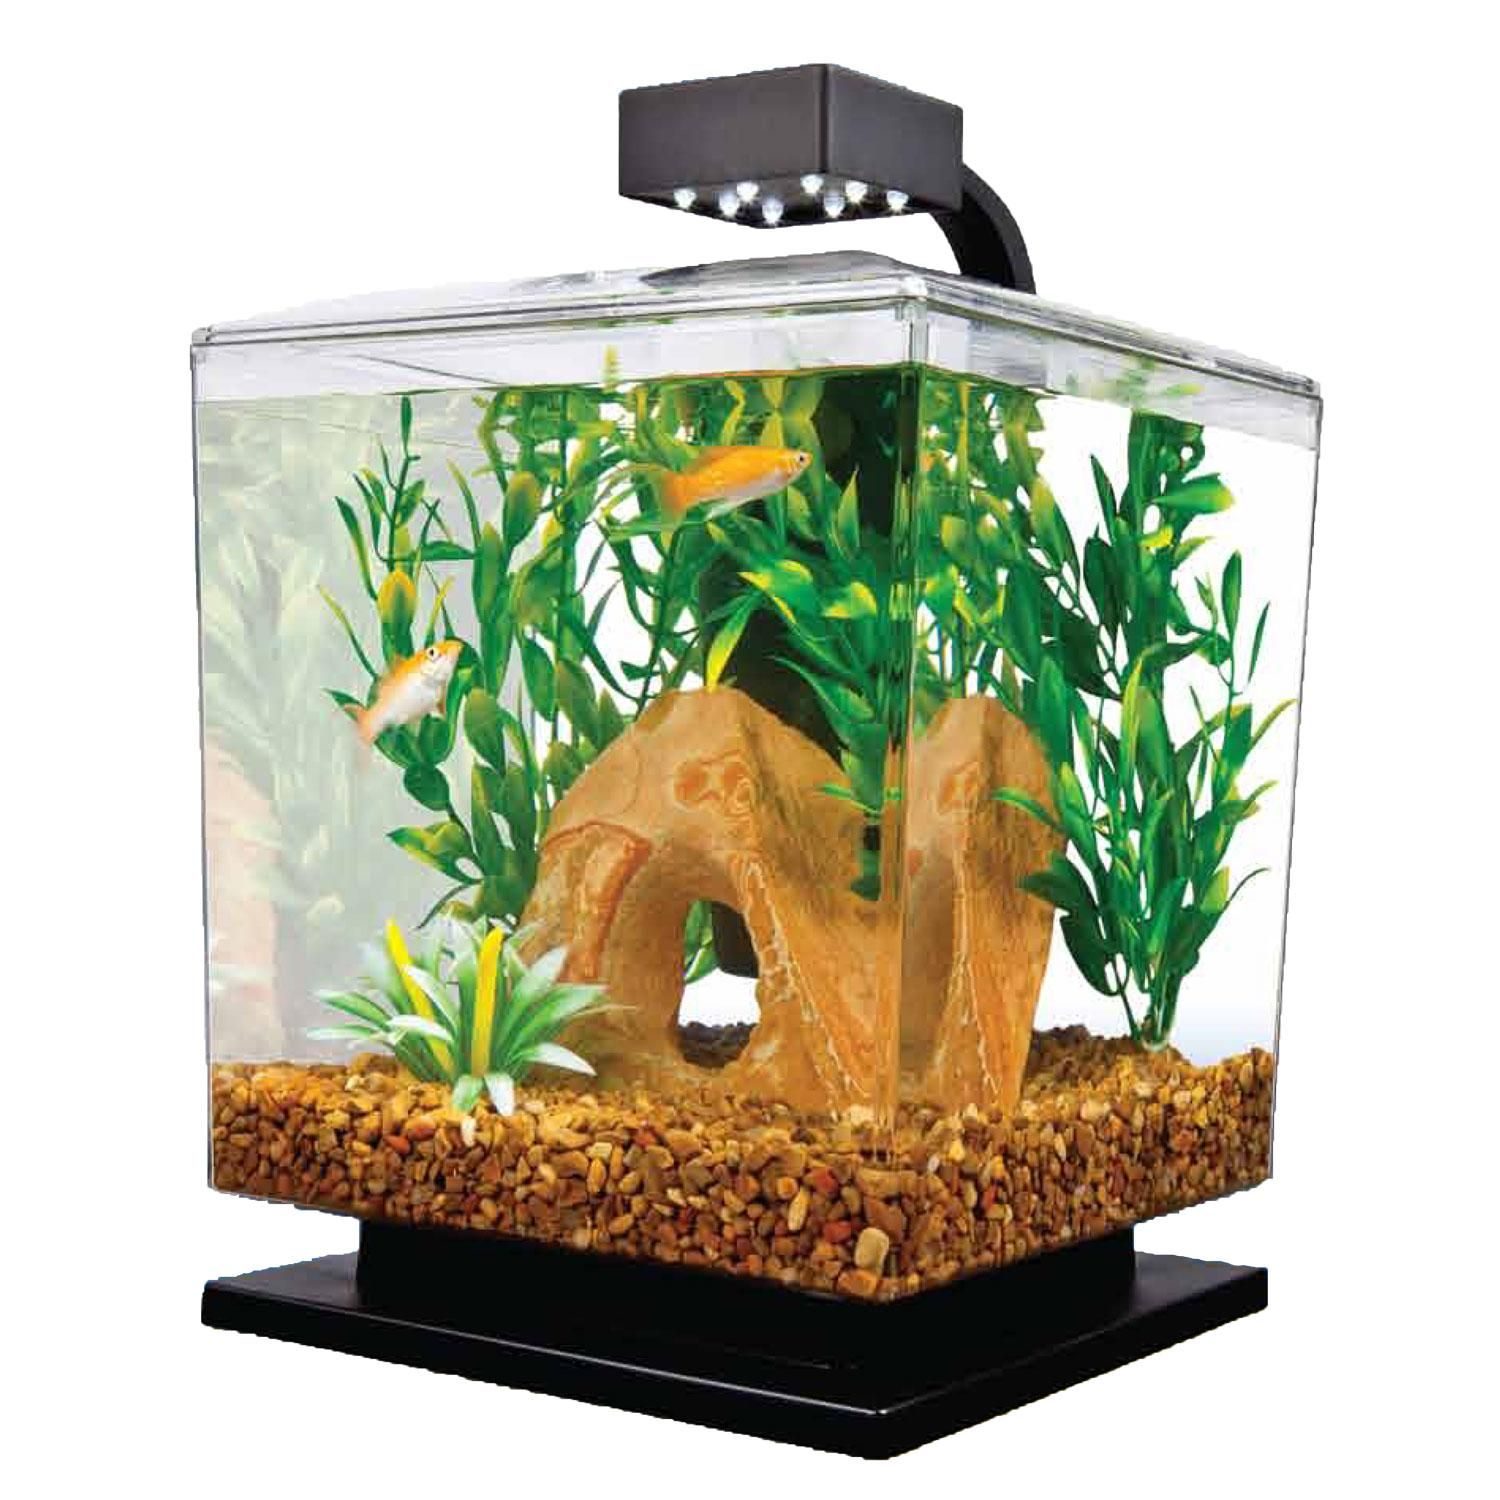 Tetra 1 5 Gallon Led Desktop Aquarium Kit Aquarium Kit Desktop Aquarium 5 Gallon Aquarium